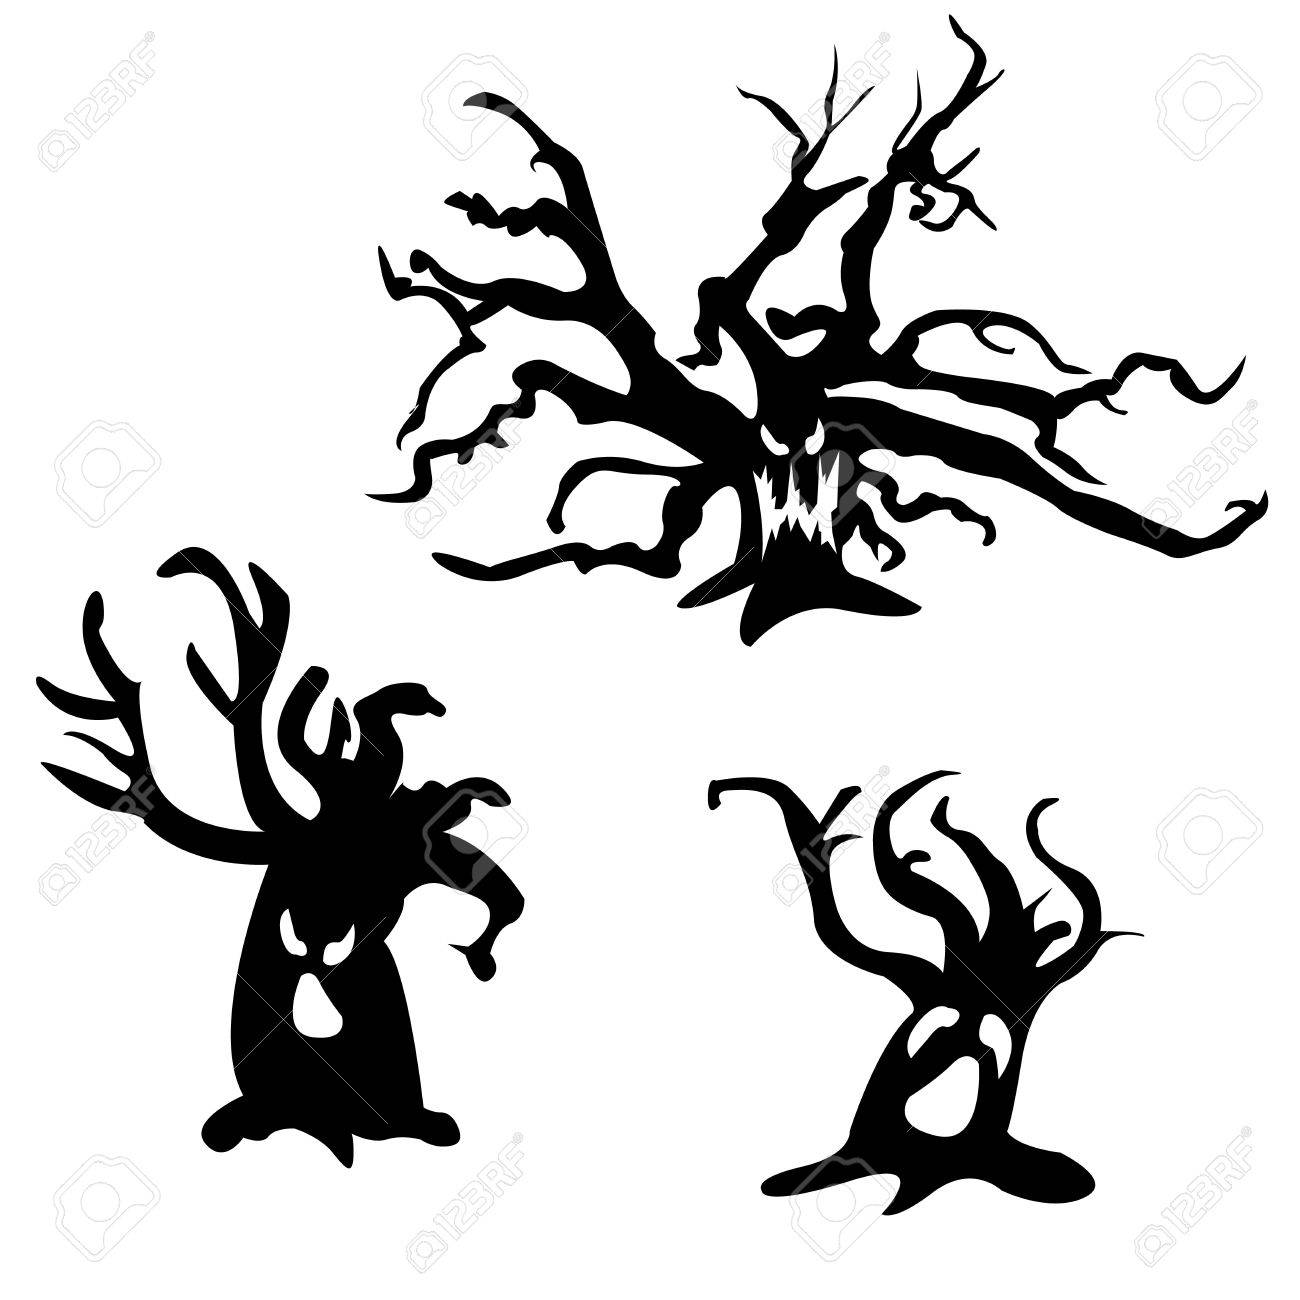 set of halloween vector scary trees black illustration ghost rh 123rf com Ghost Clip Art Black and White Scared Ghost Clip Art